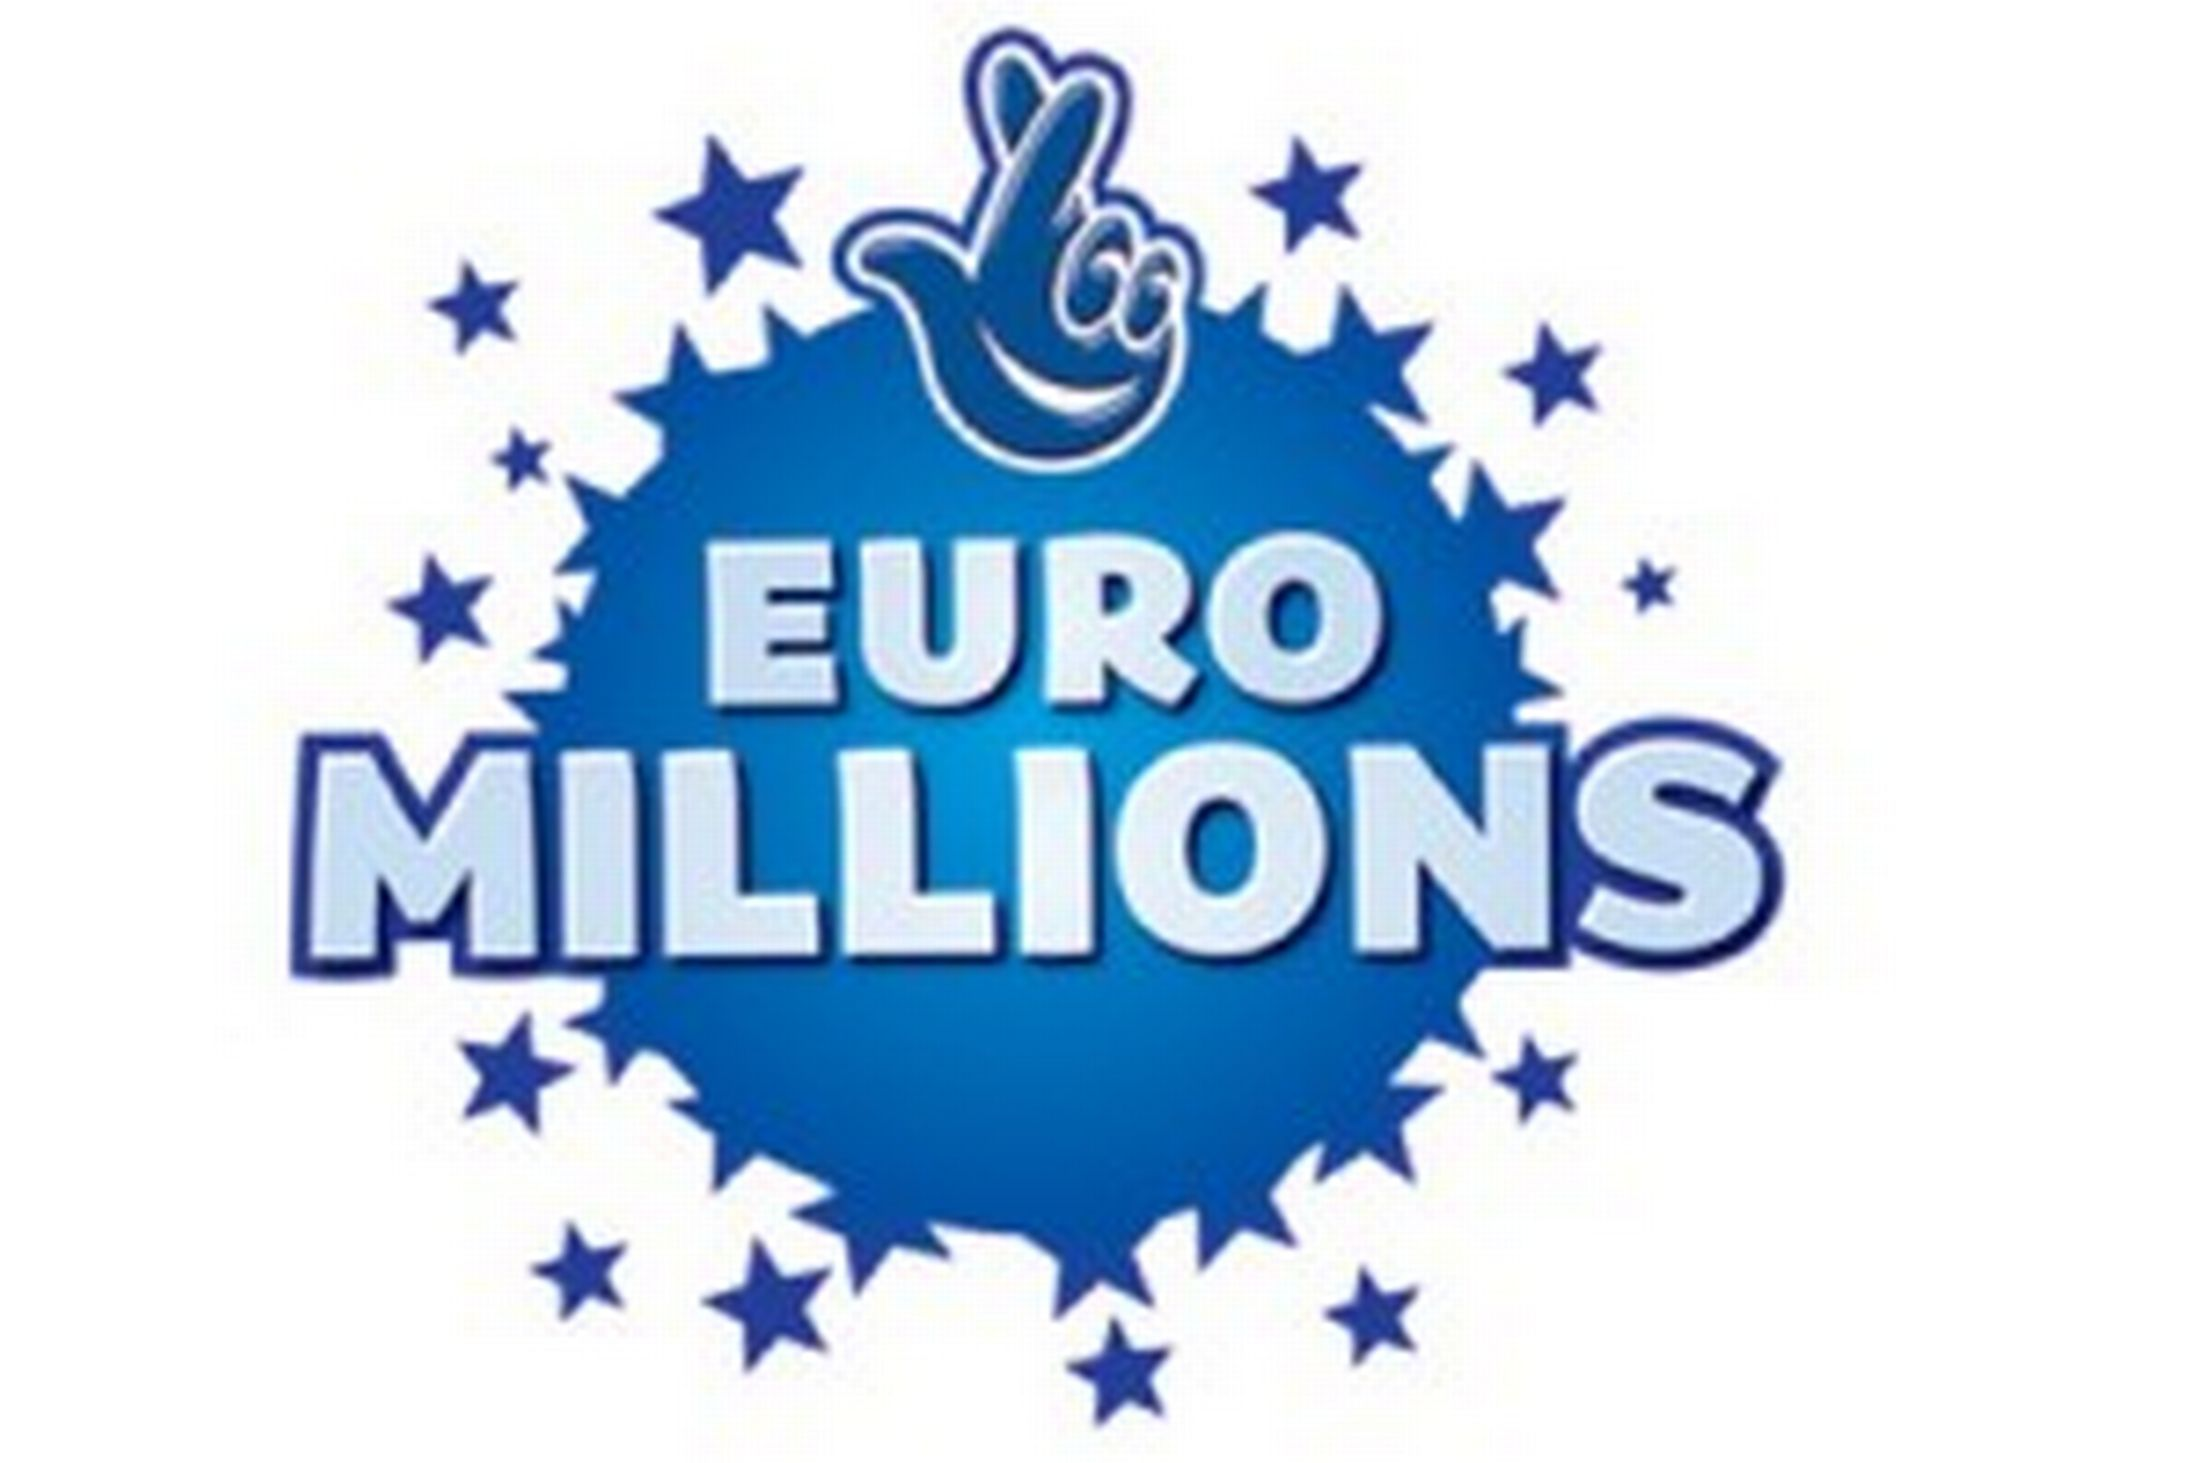 Lotto Euromillions Buy Official Tickets For Euromillions Lottery Online Lottery Shop